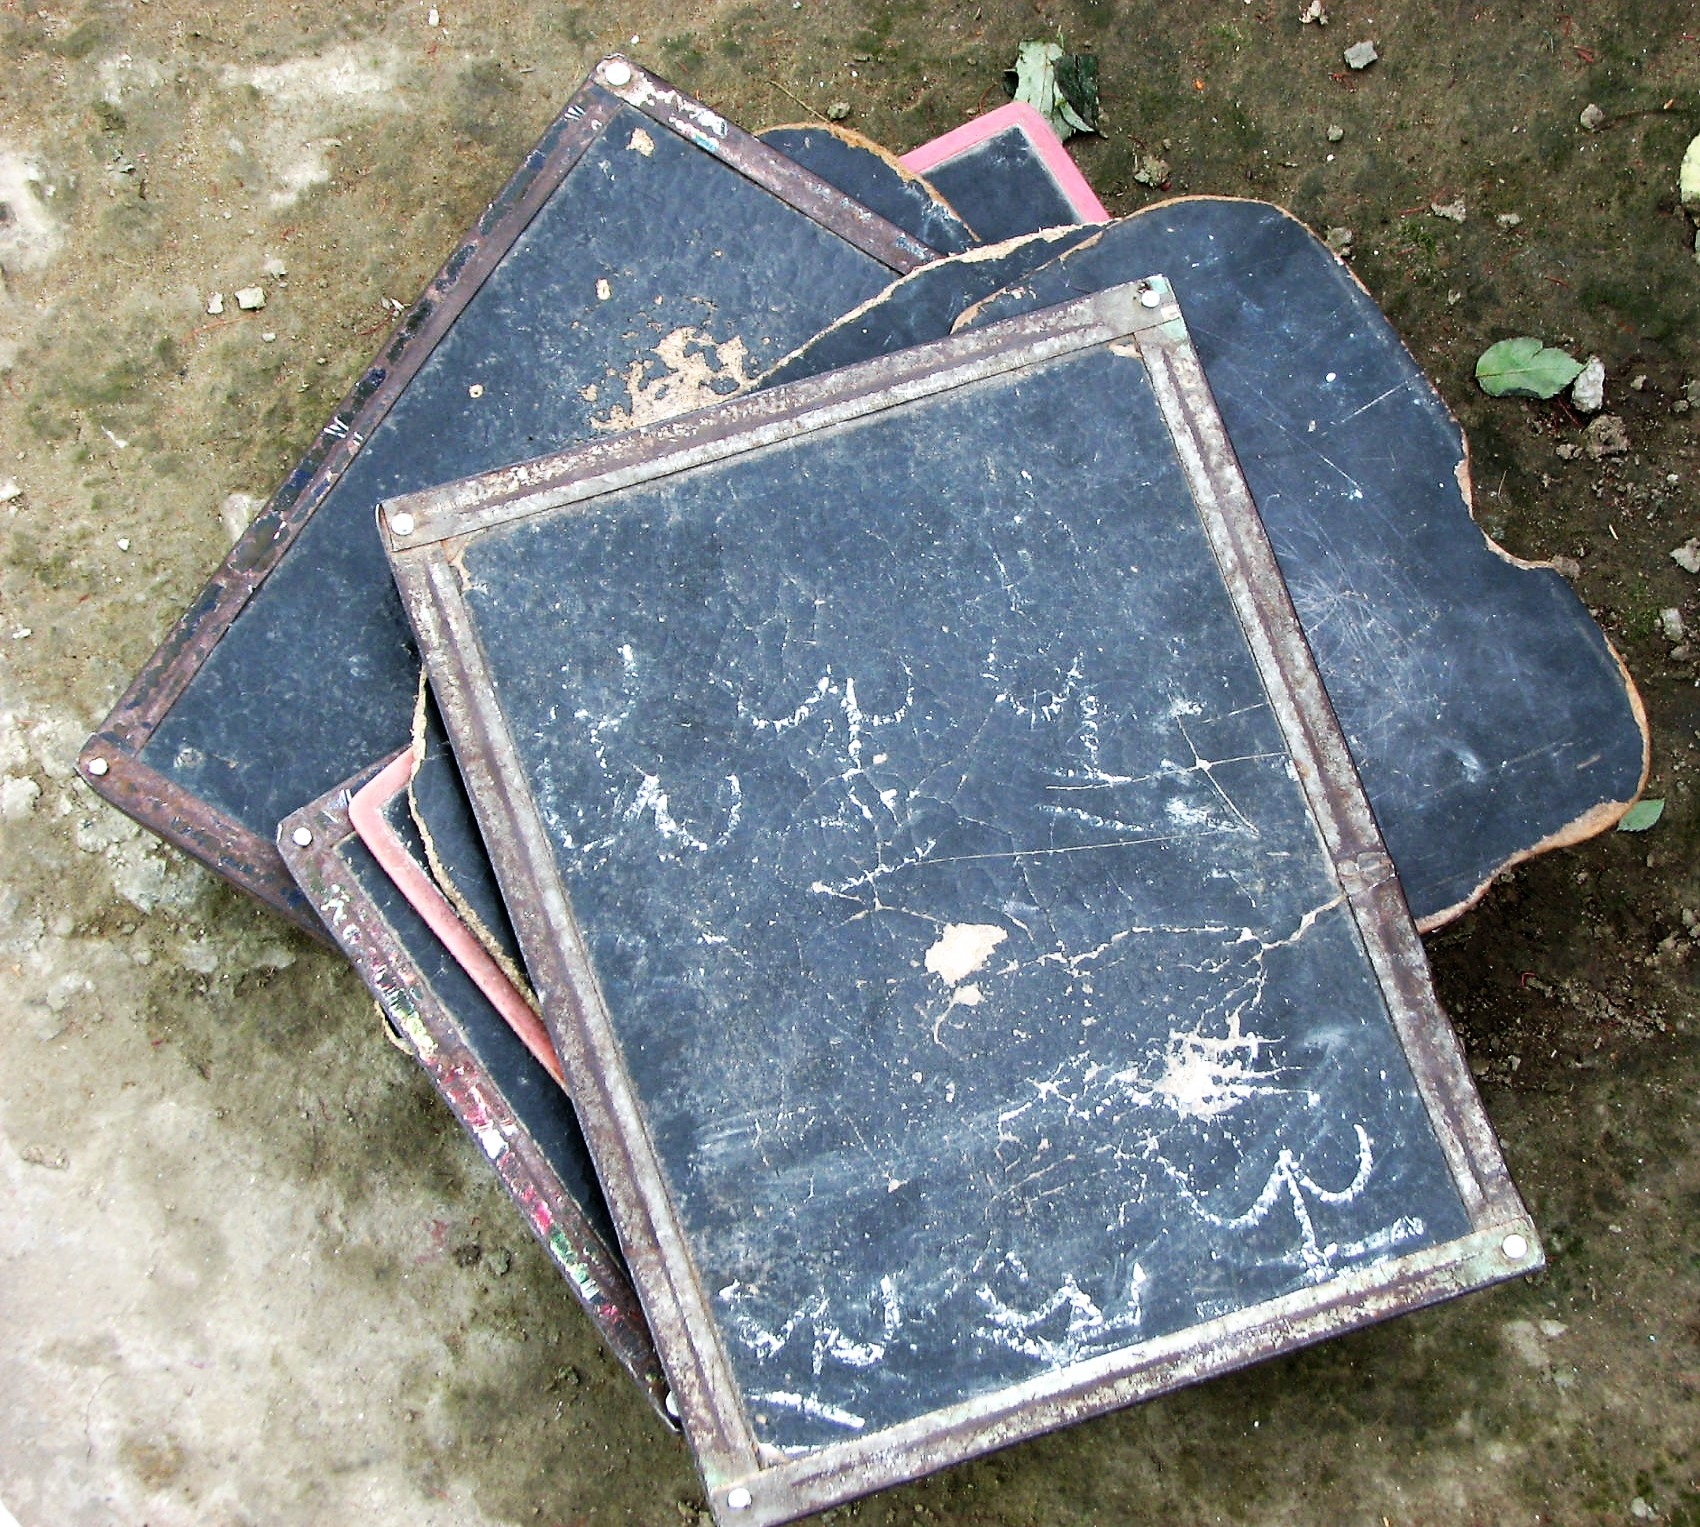 Slates used in Slum Schools.